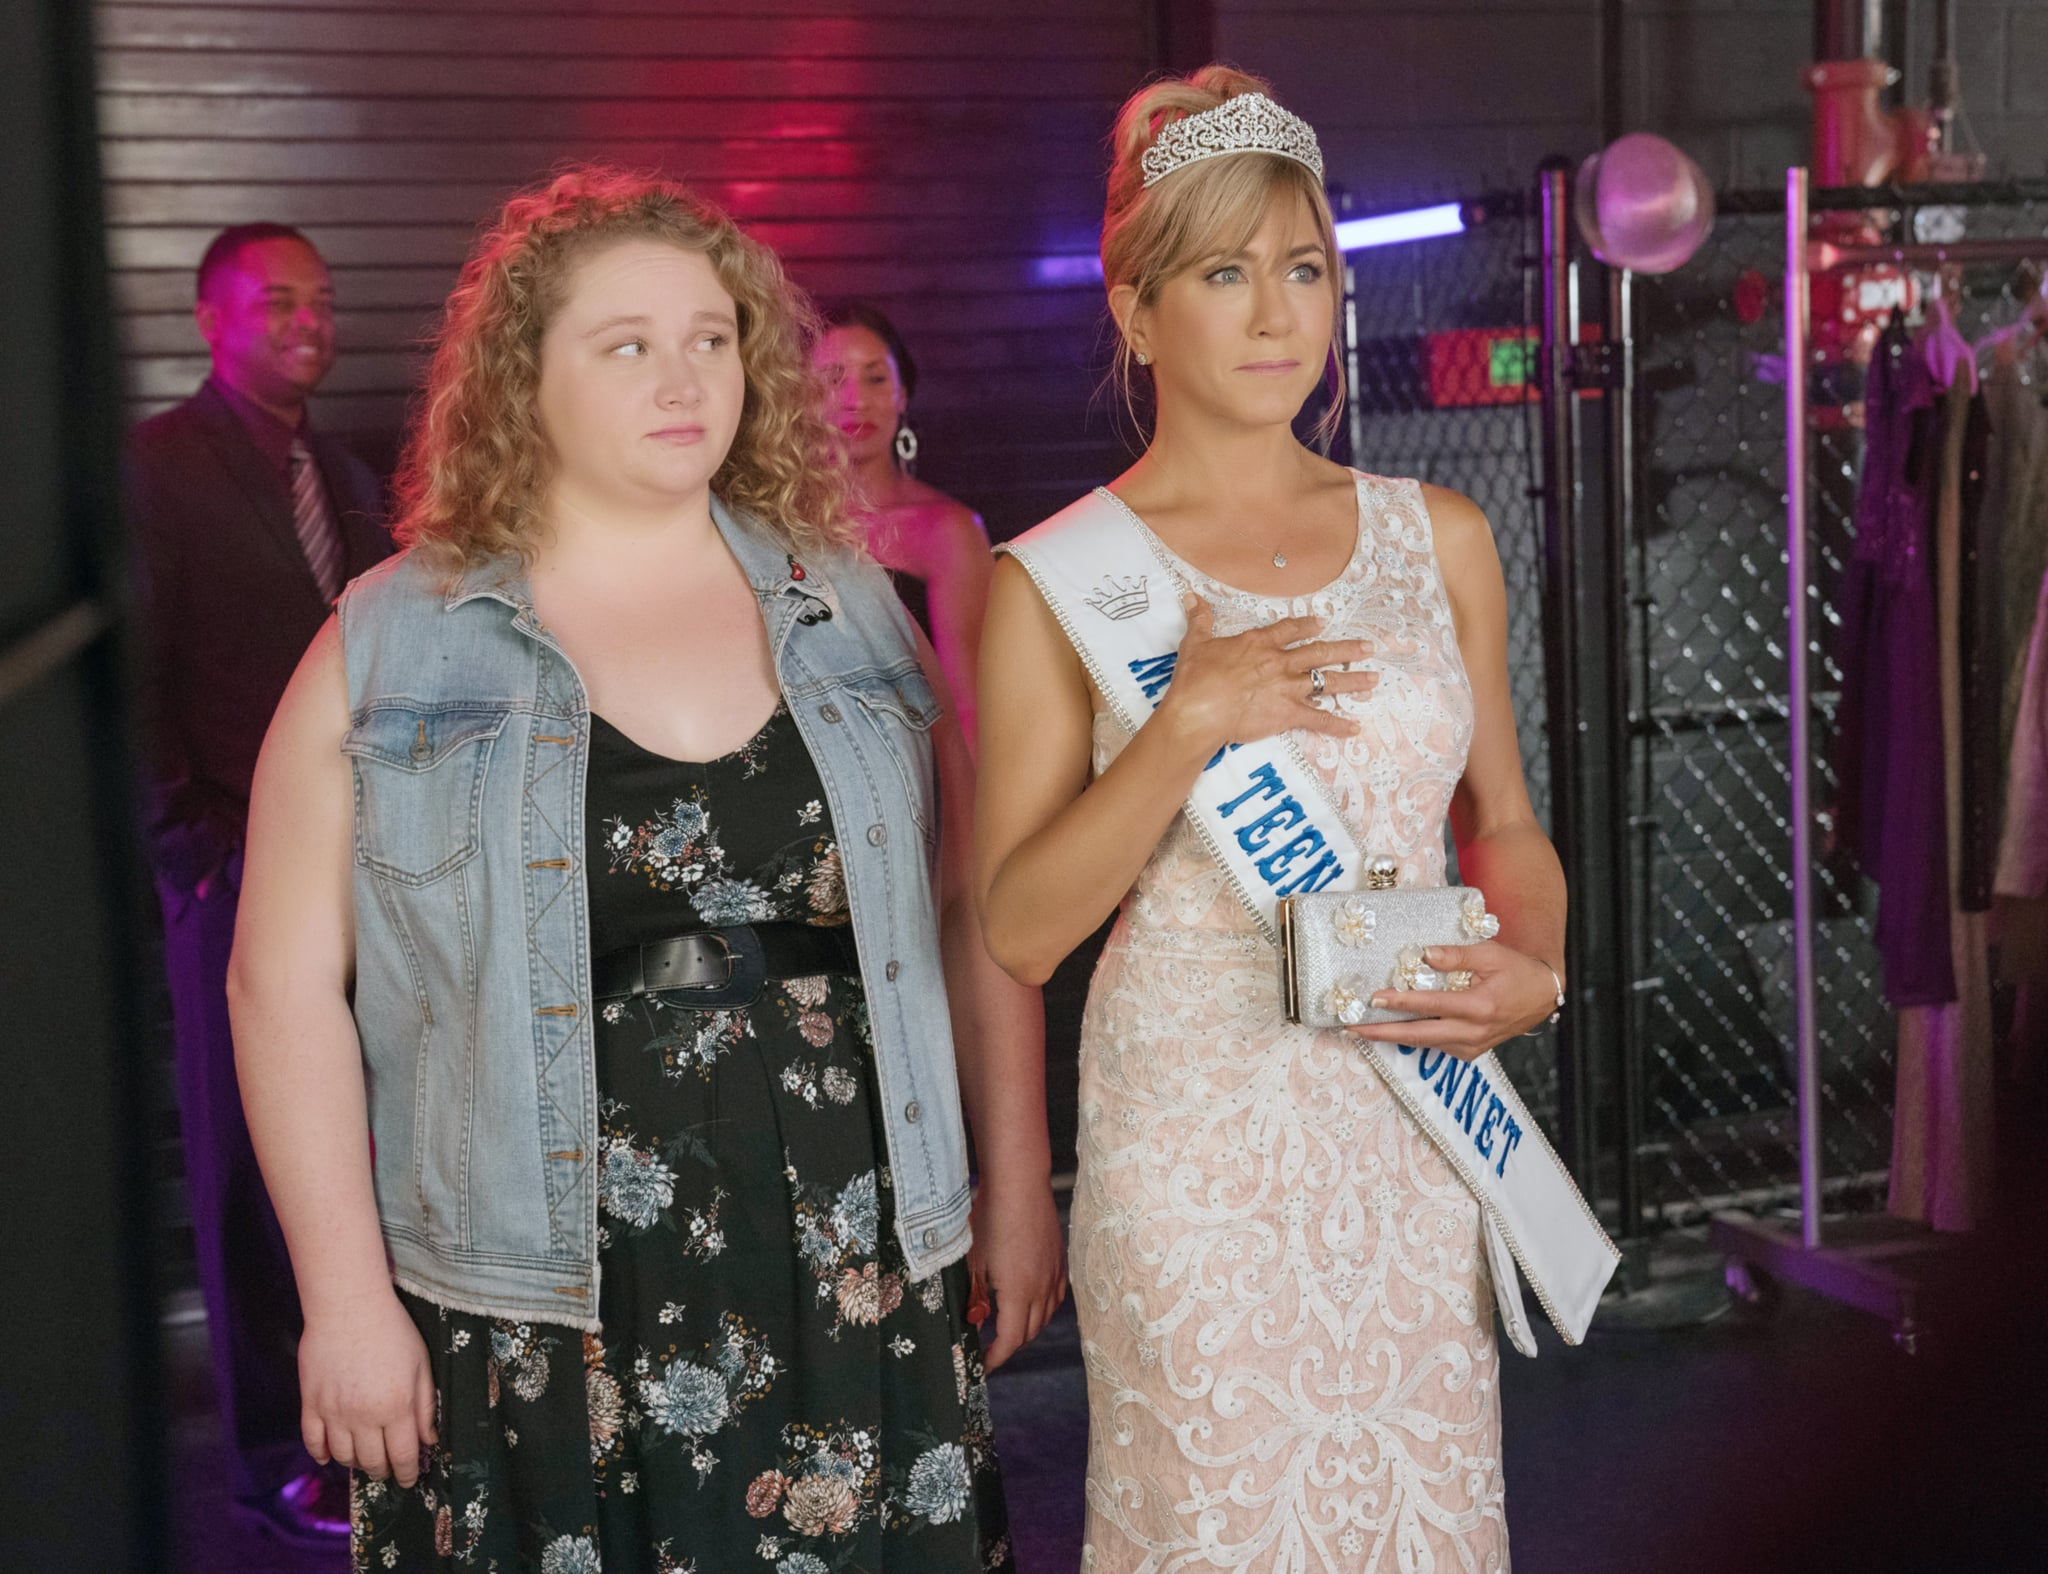 DUMPLIN', from left: Danielle Macdonald, Jennifer Aniston, 2018. ph: Bob Mahoney /  Netflix /Courtesy Everett Collection